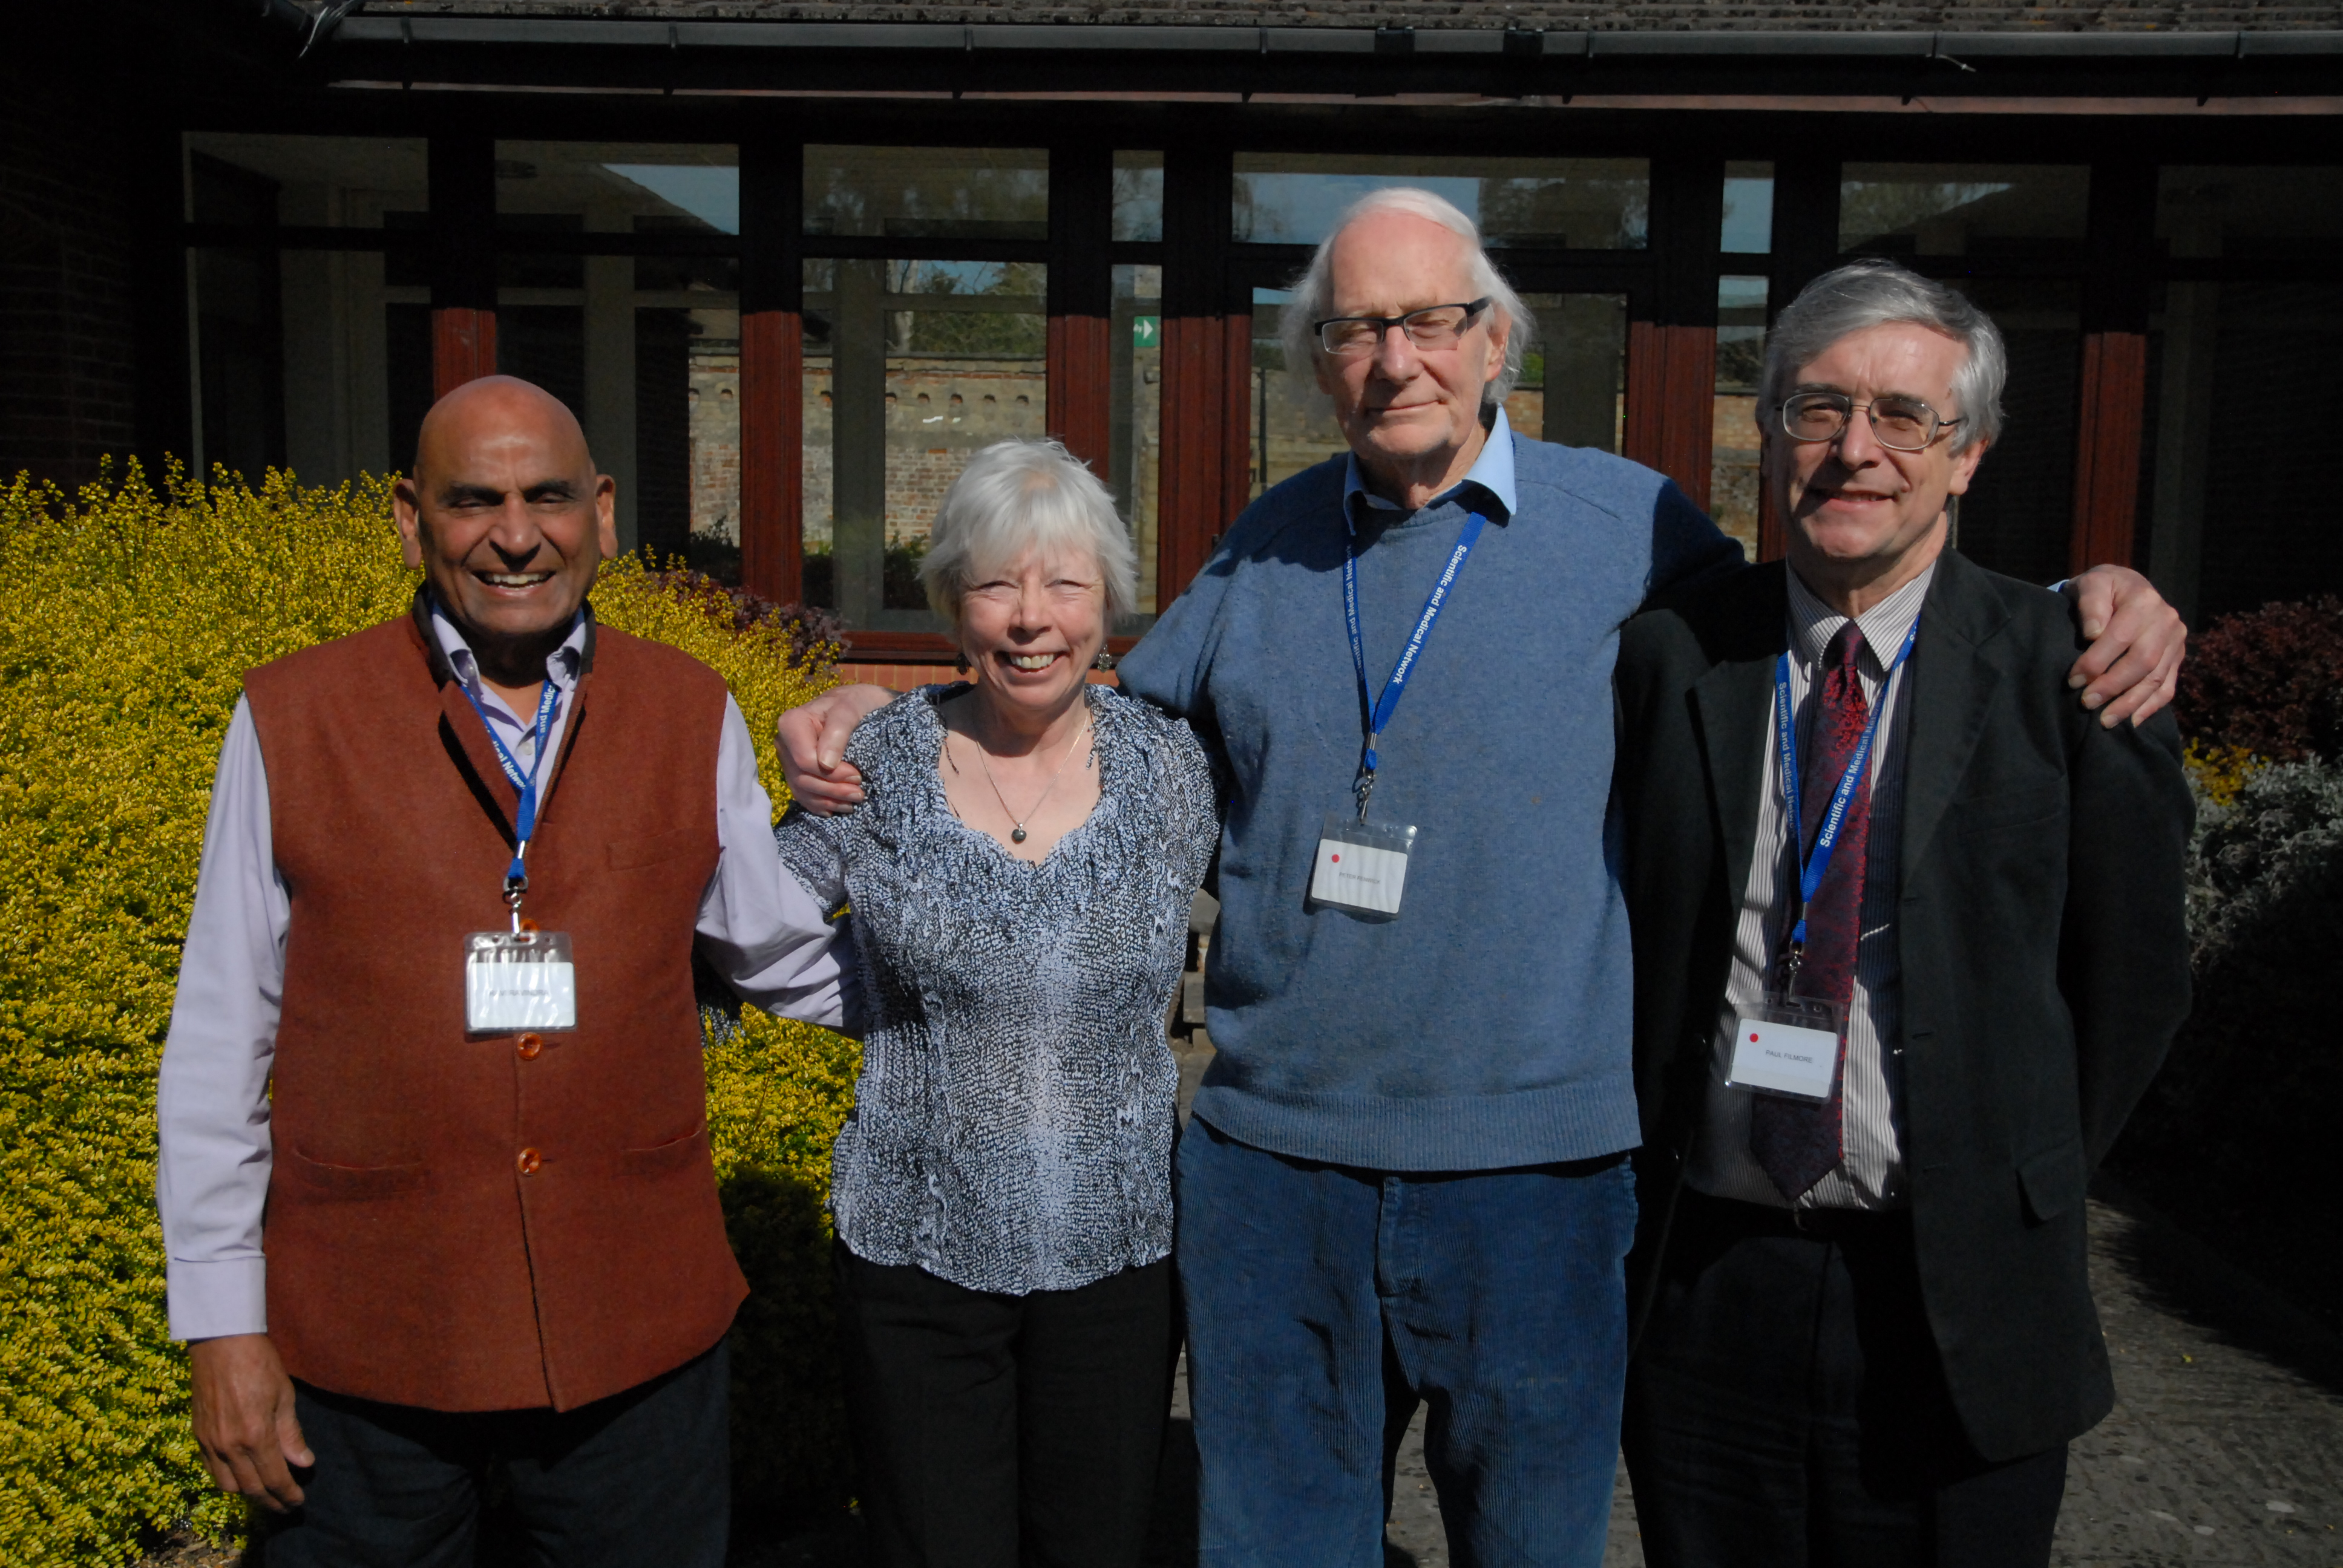 Mystics and Scientists 40: Ravi Ravindra, Jude Currivan, Peter Fenwick, Paul Filmore